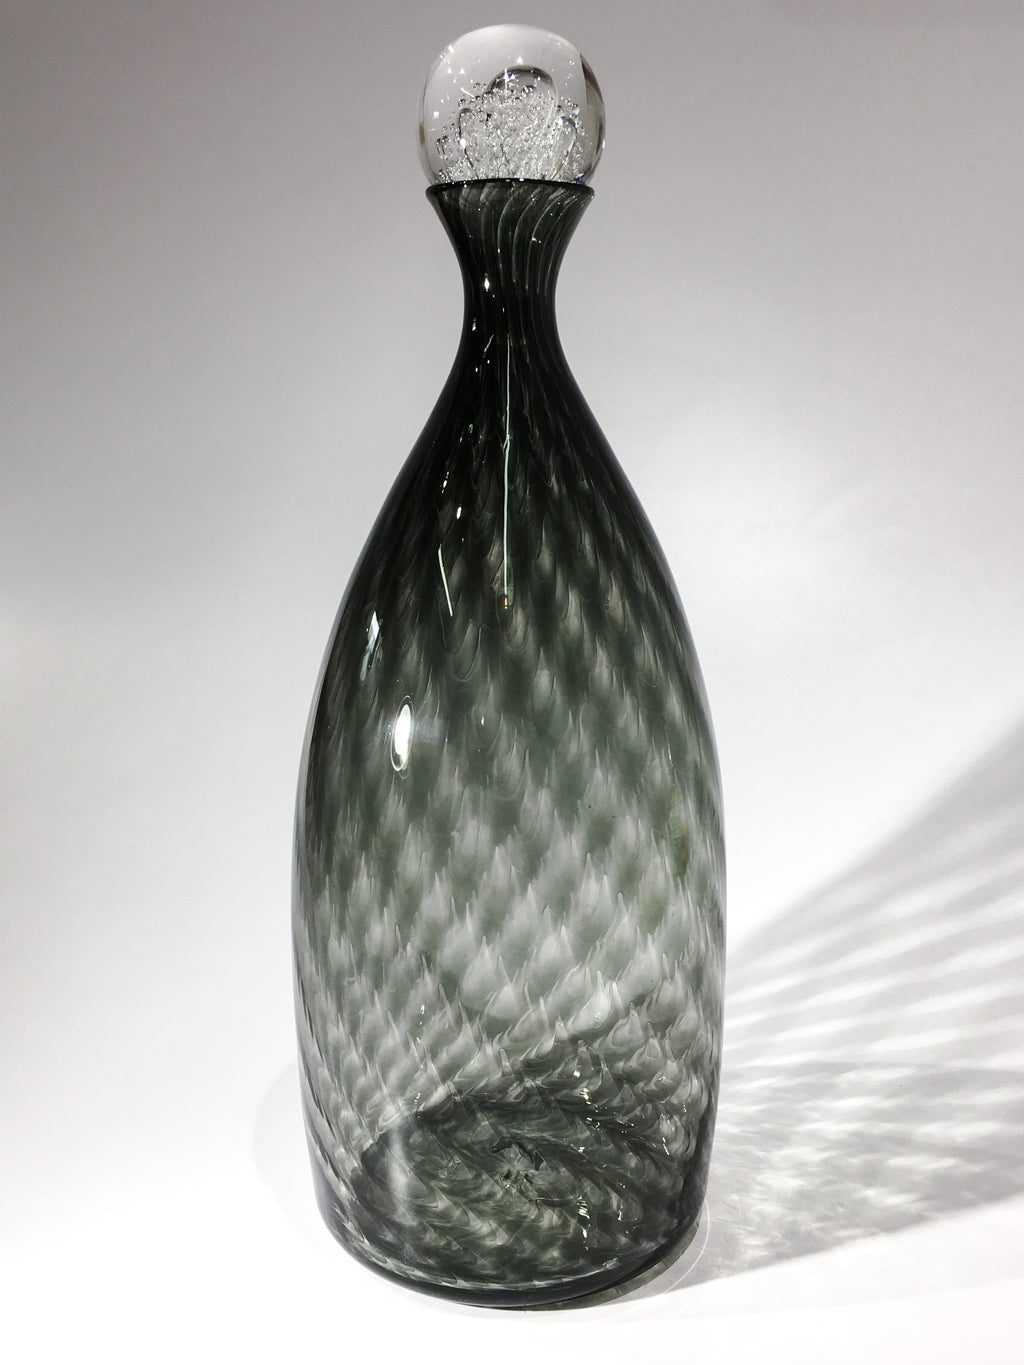 Woven Bottle with Stopper - #191224-4